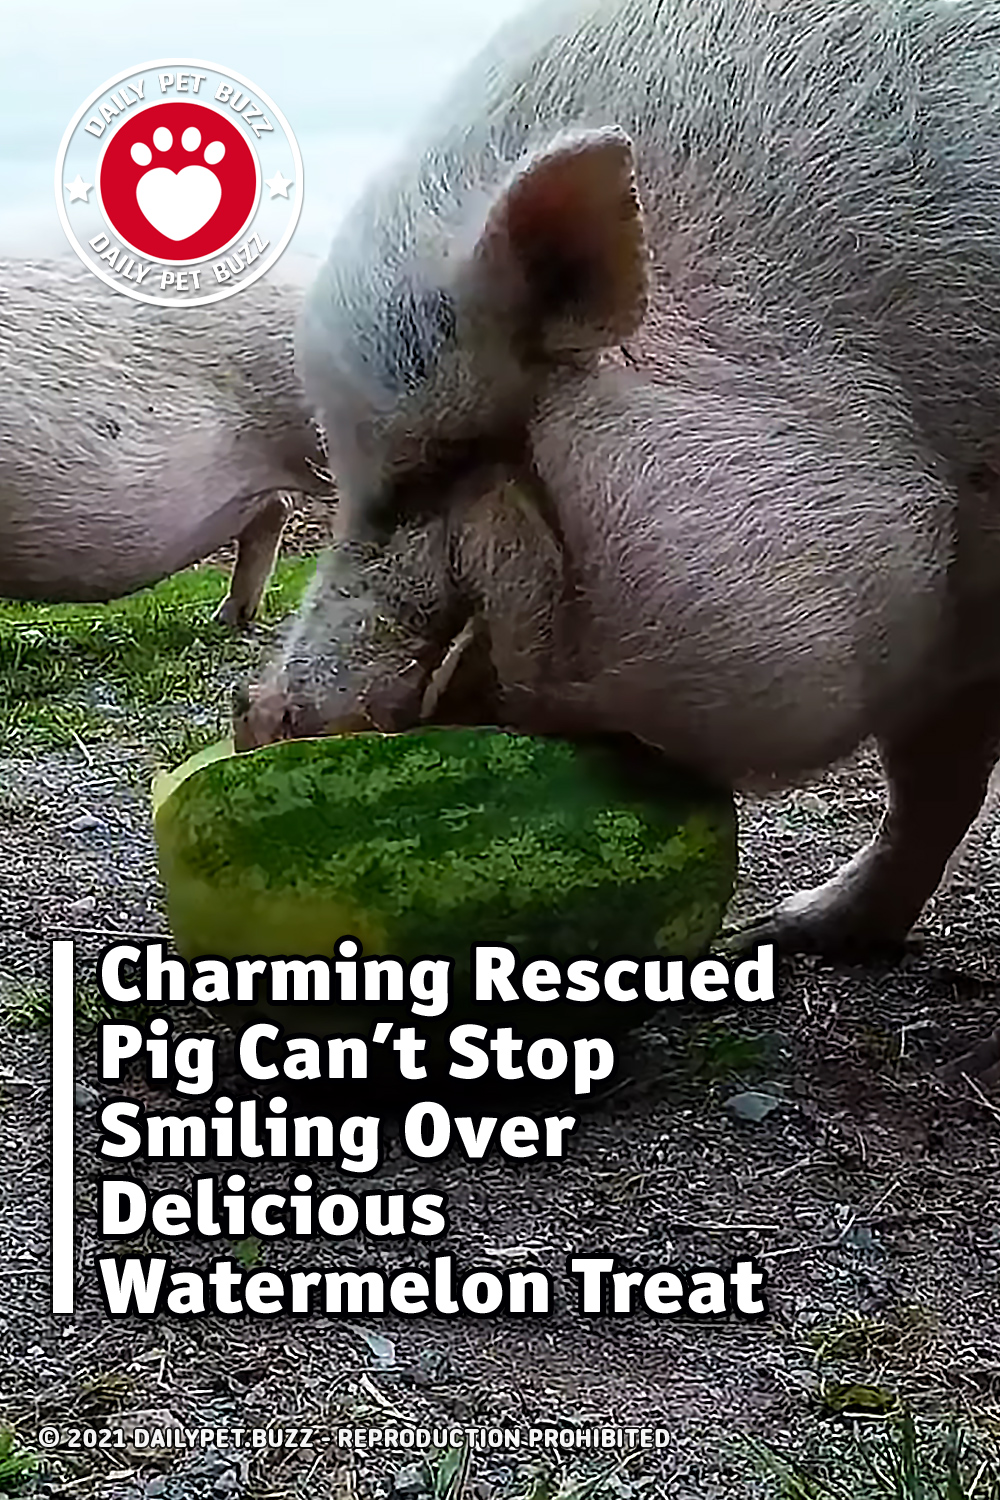 Charming Rescued Pig Can't Stop Smiling Over Delicious Watermelon Treat